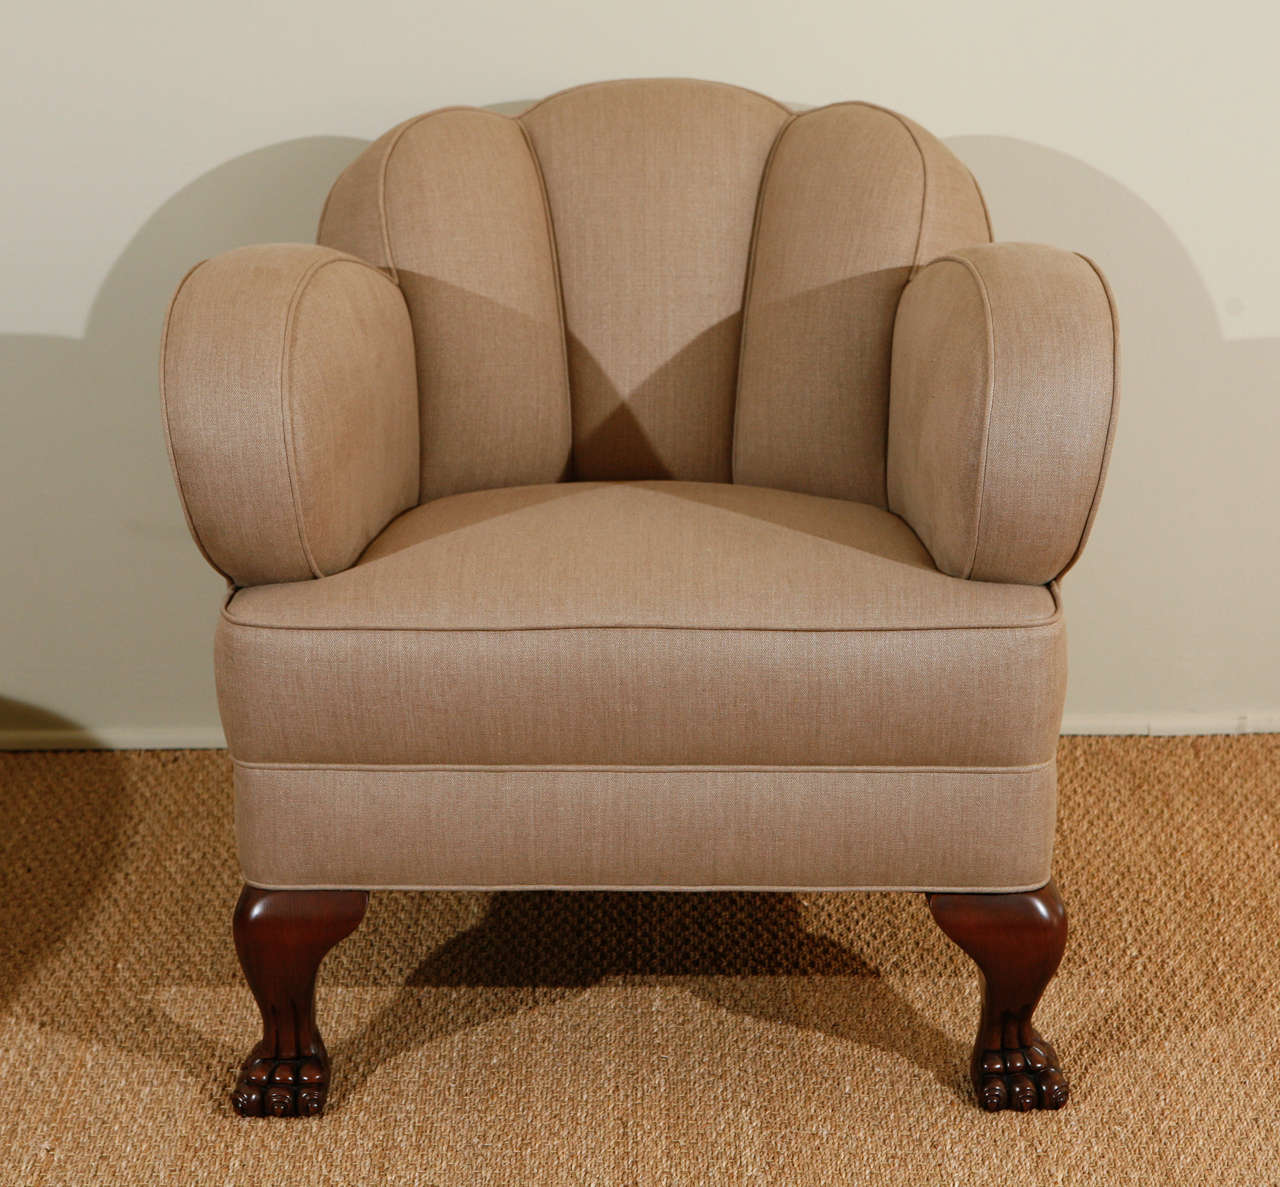 Bear Claw Chair For Sale At 1stdibs